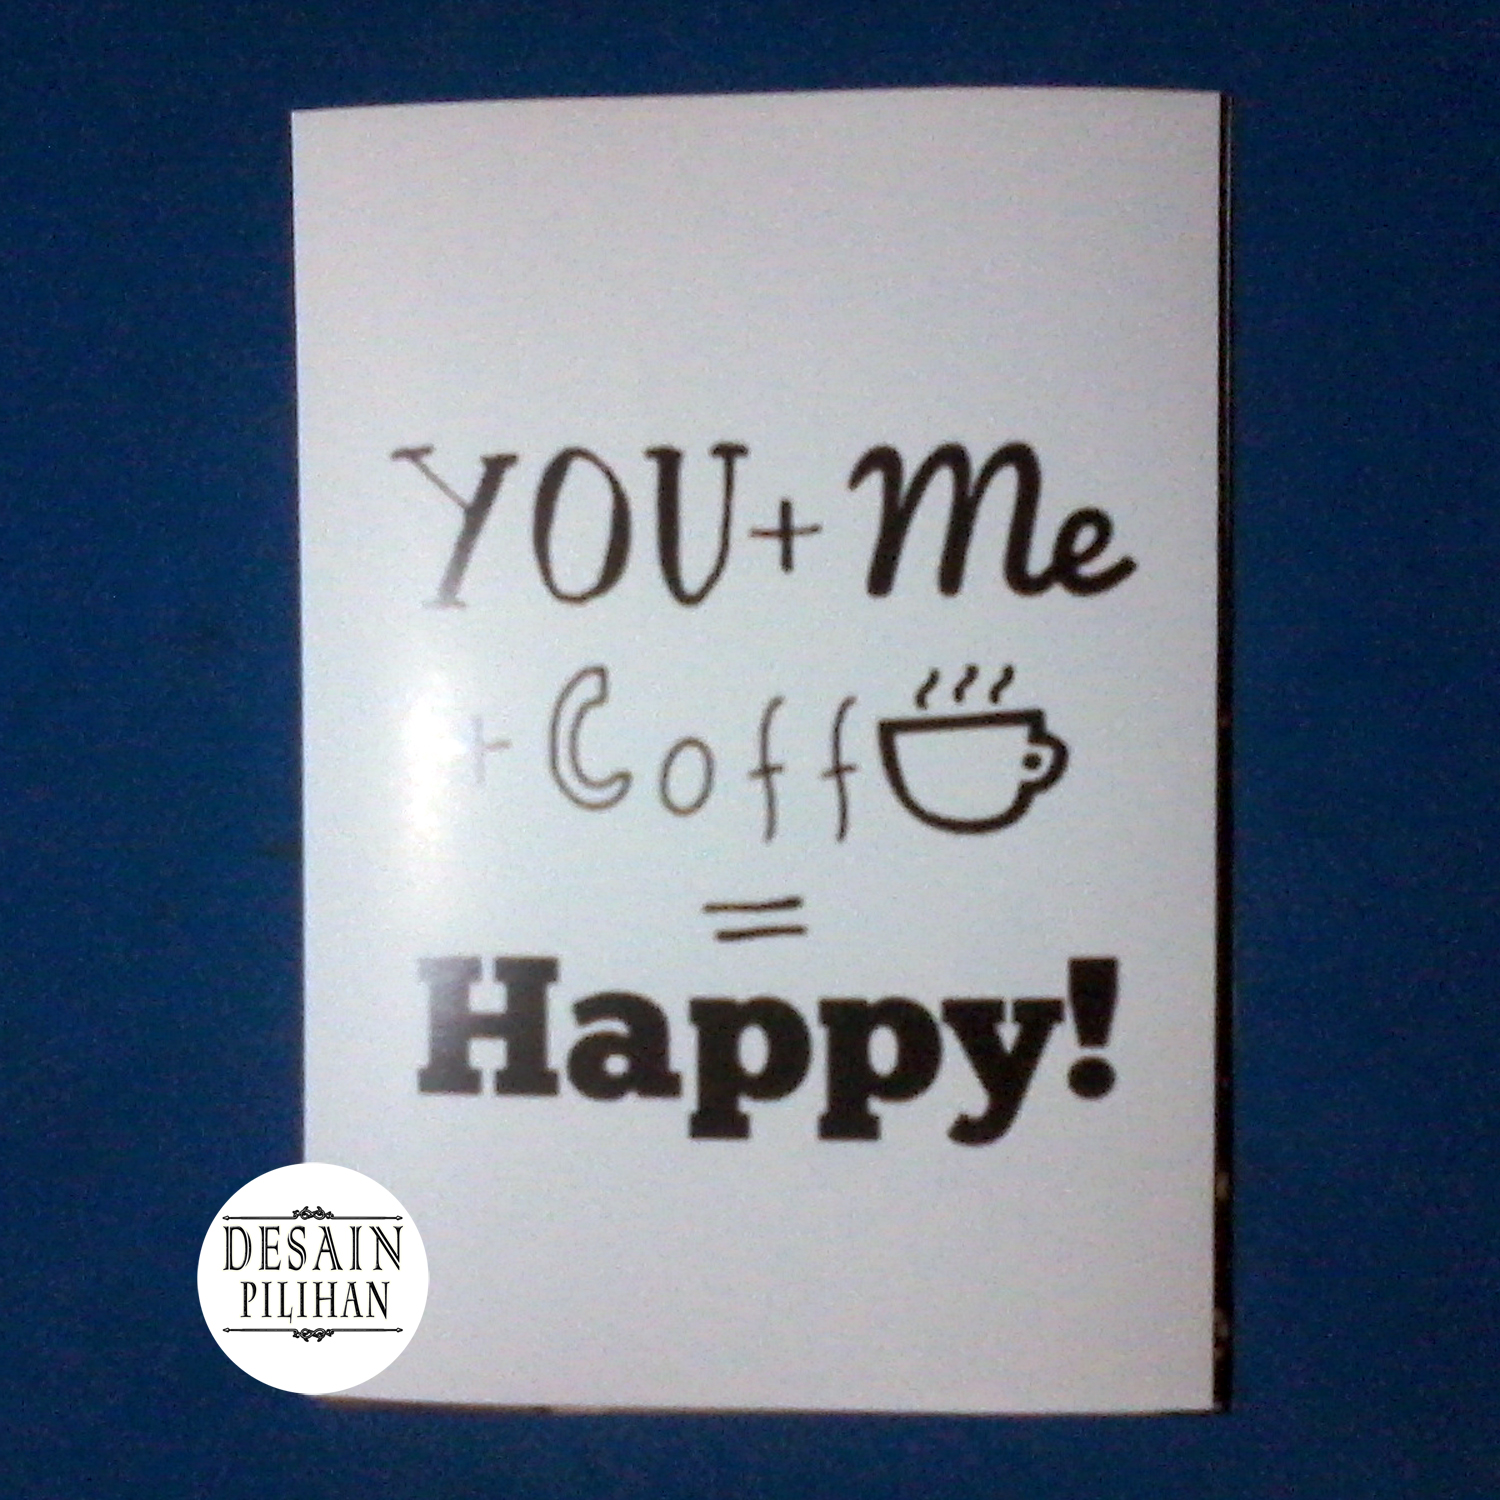 POSTER YOU ME COFFE HAPPY